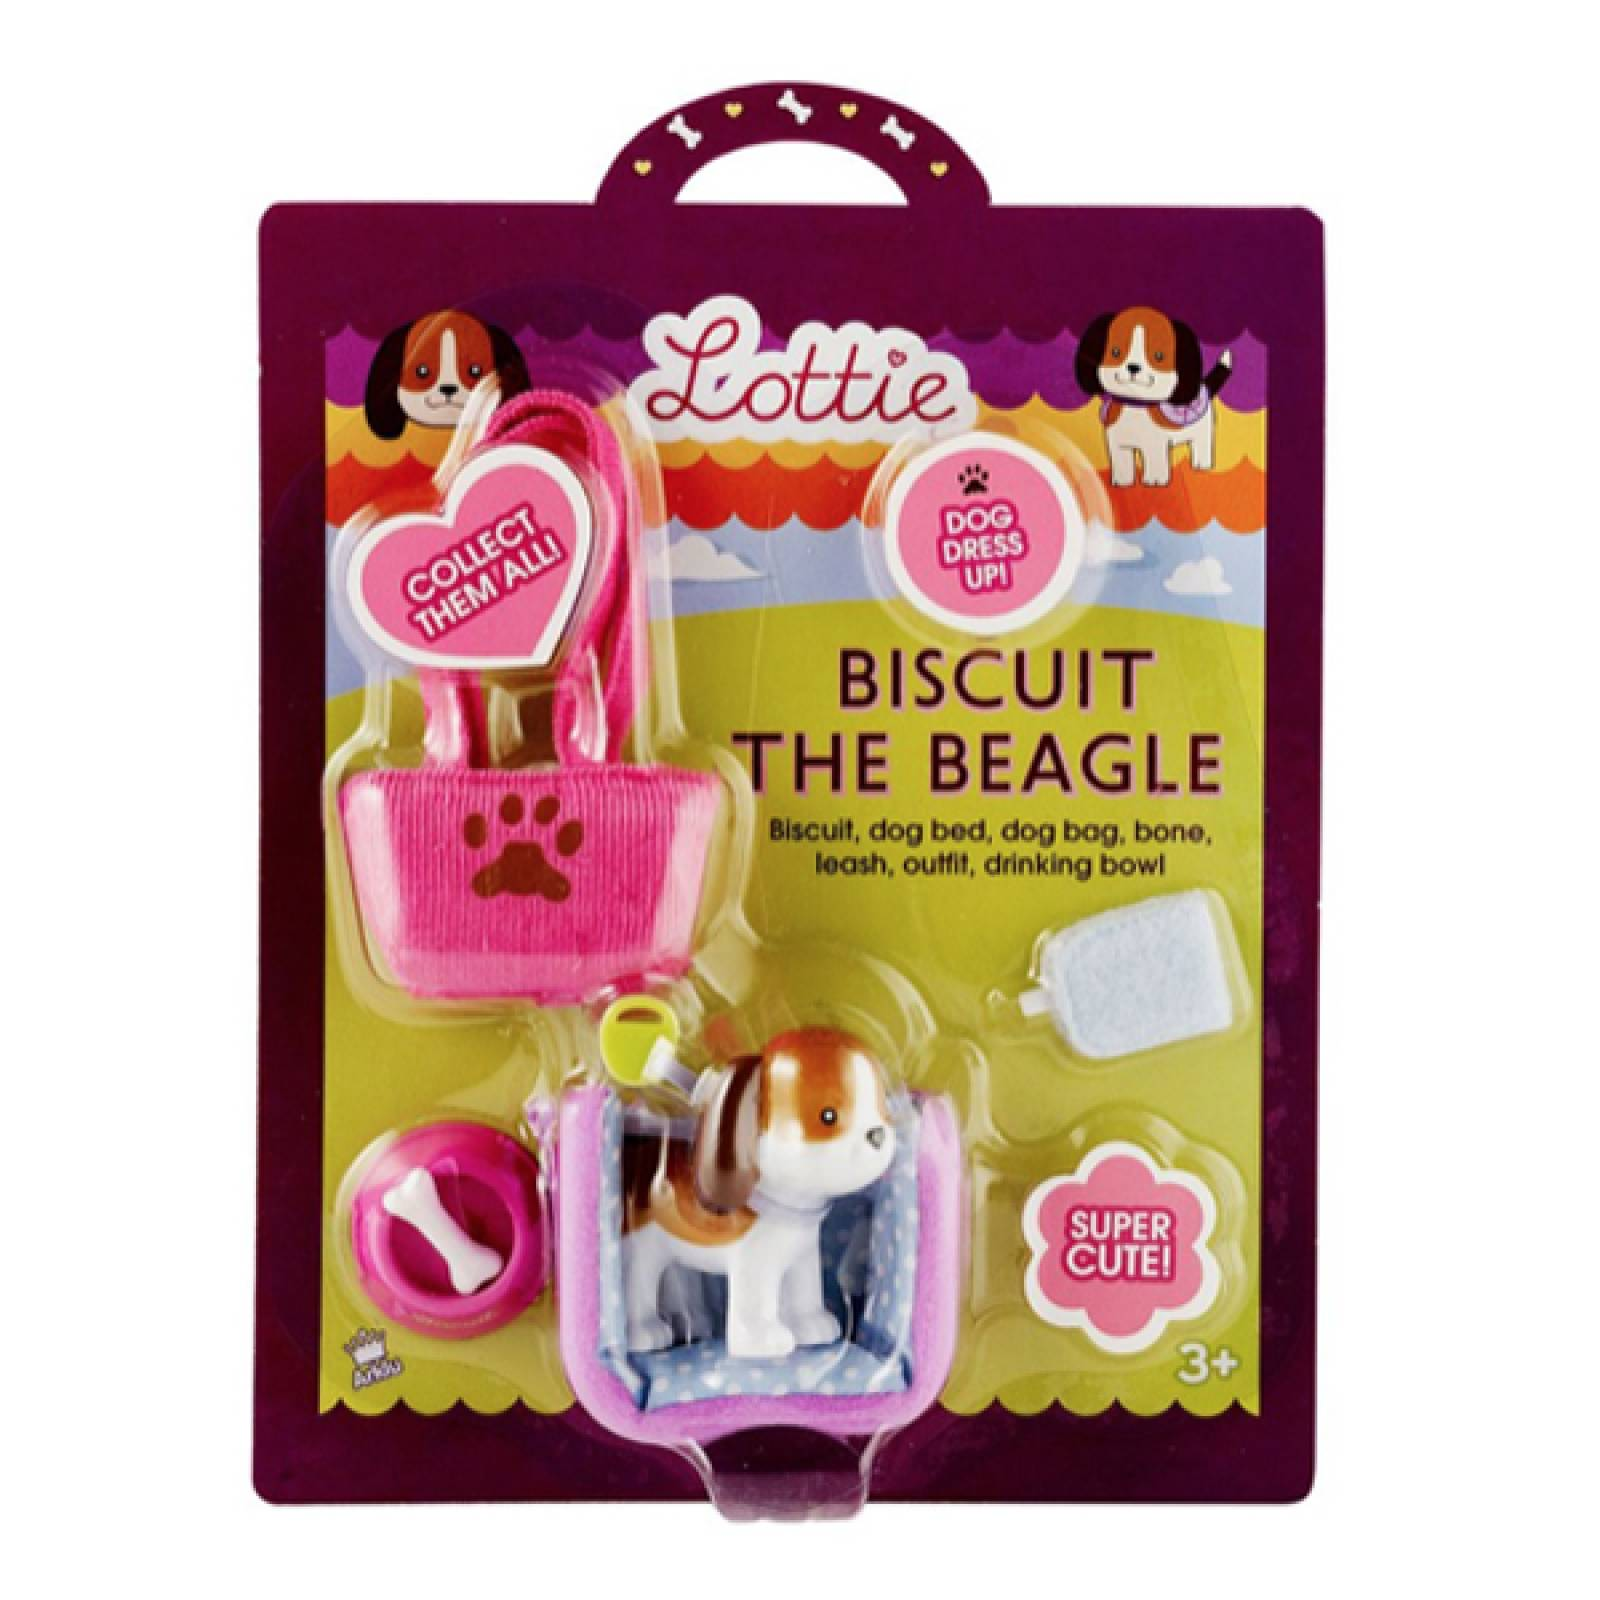 Biscuit The Beagle Lottie Doll Range 3yr+ thumbnails